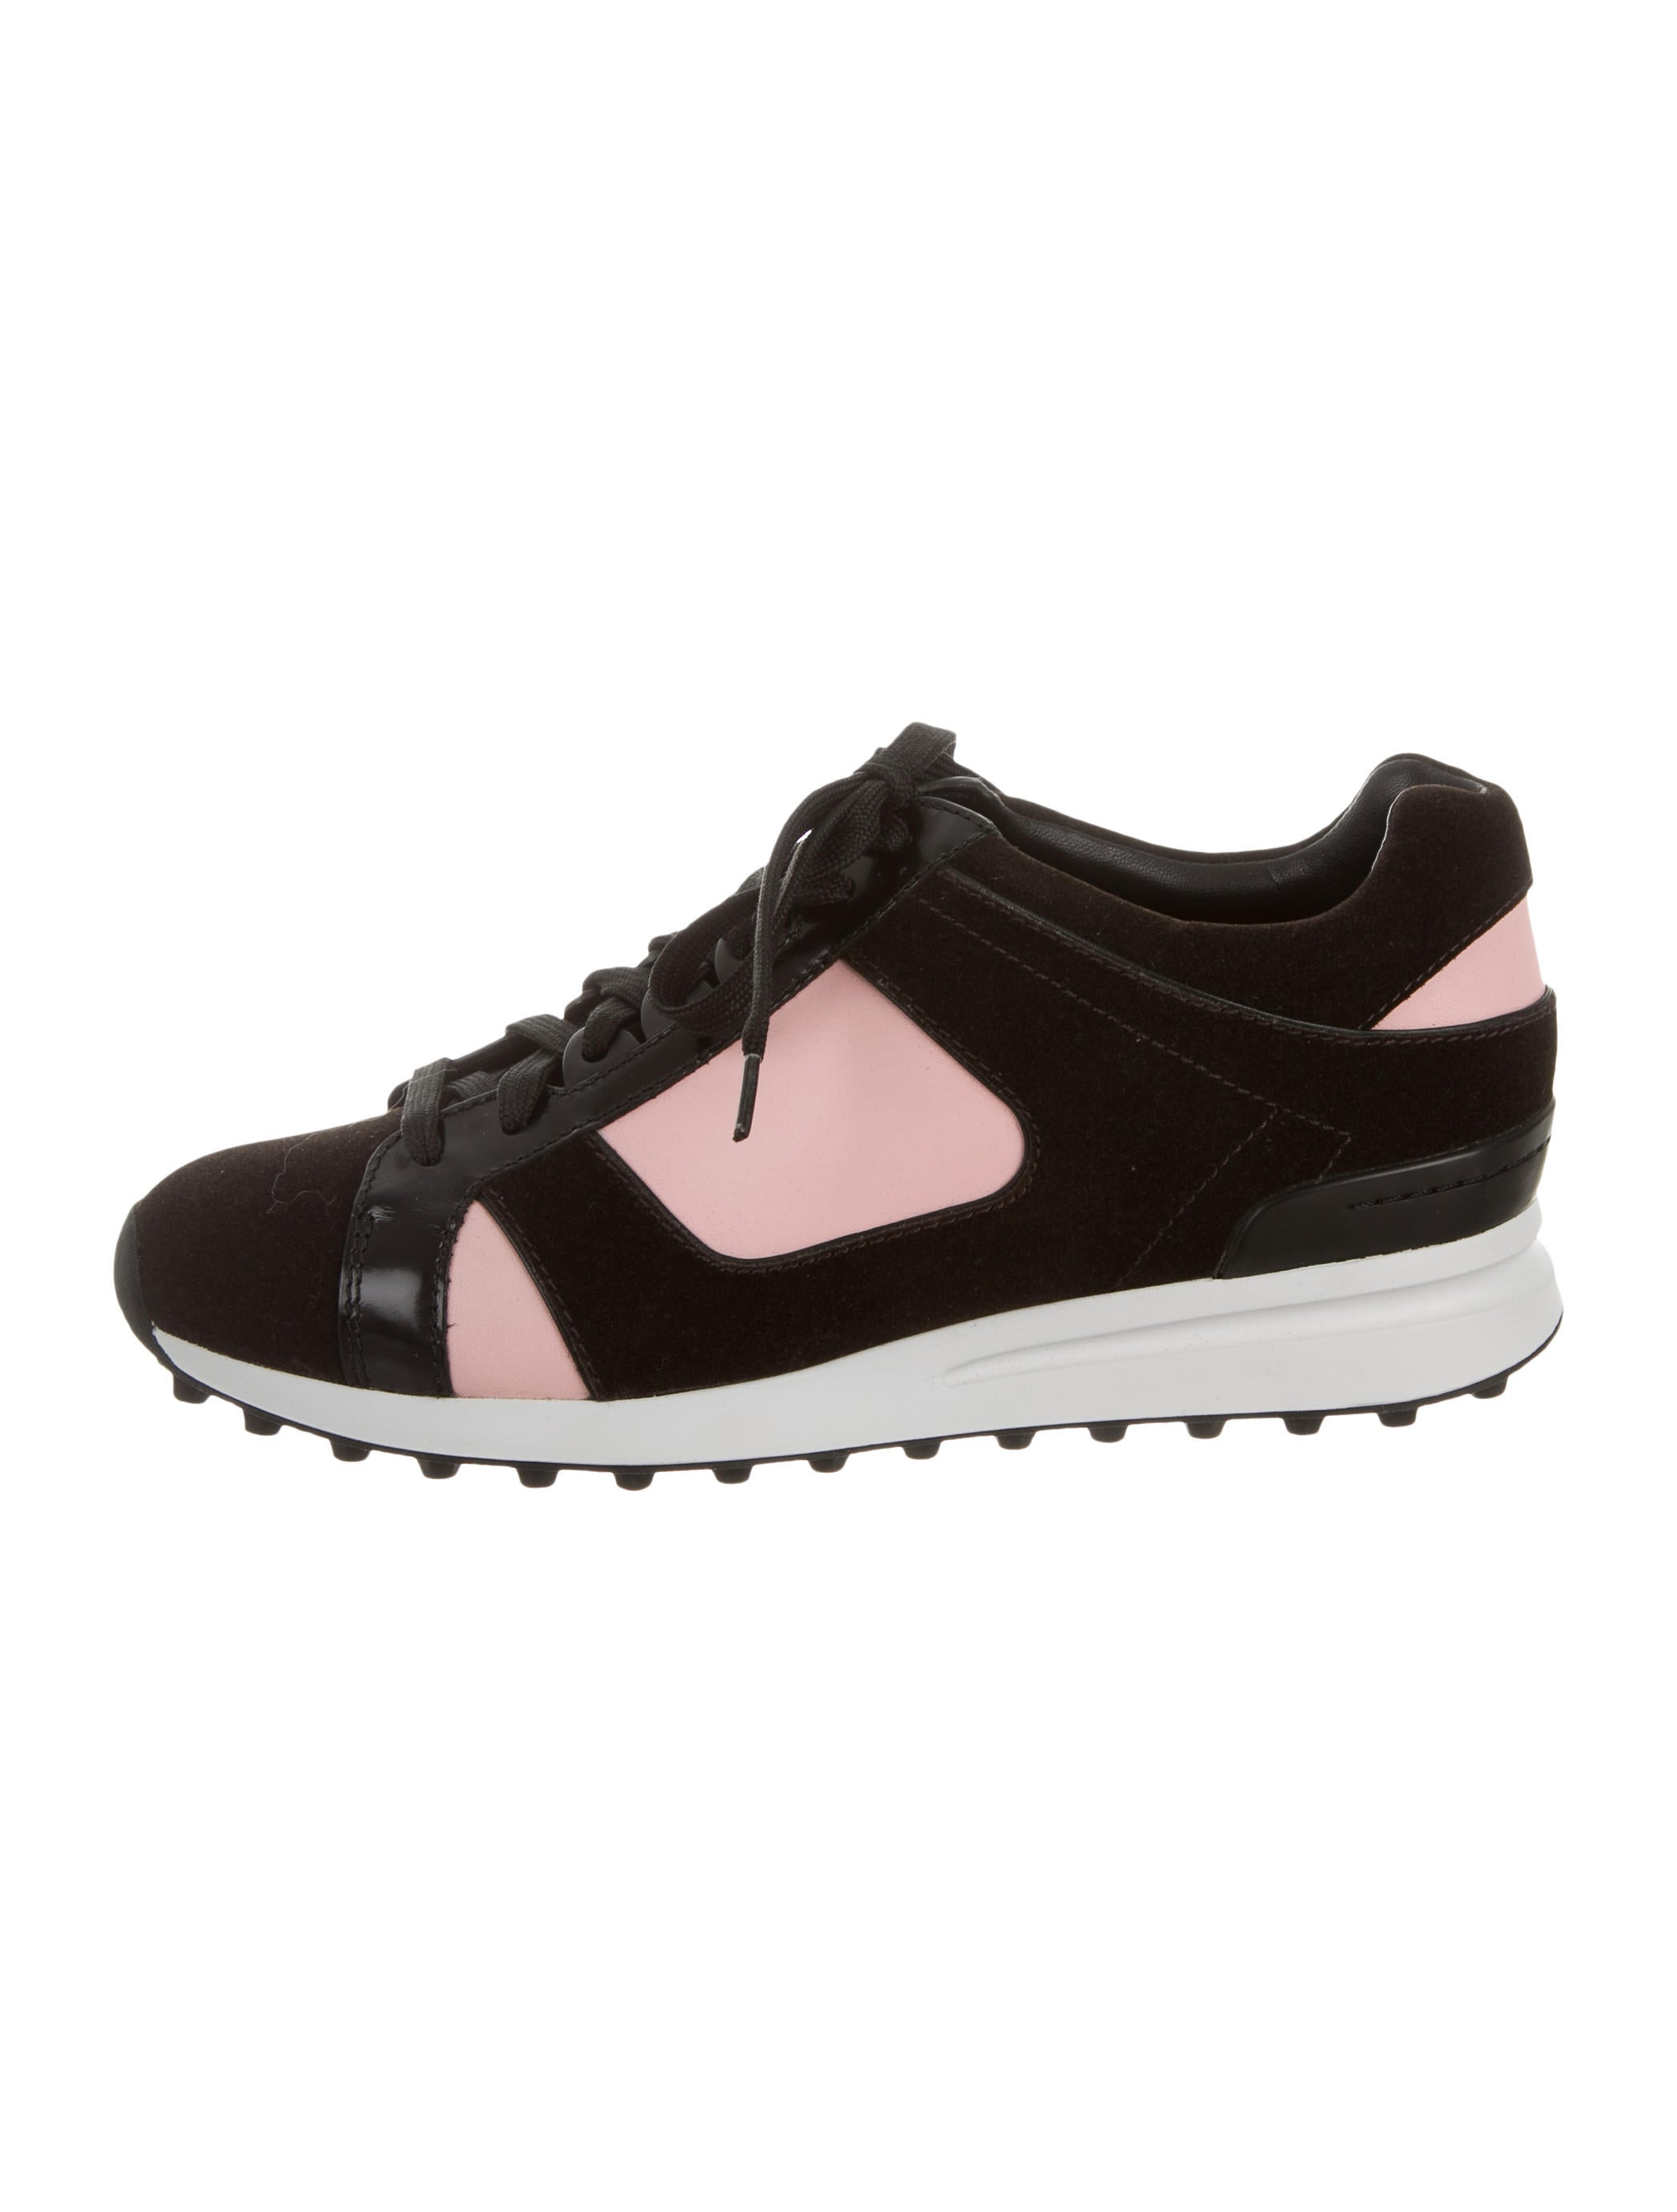 cheap websites cheap for nice 3.1 Phillip Lim Round-Toe Low-Top Sneakers real for sale exclusive cheap price shop offer cheap online 59n56nn